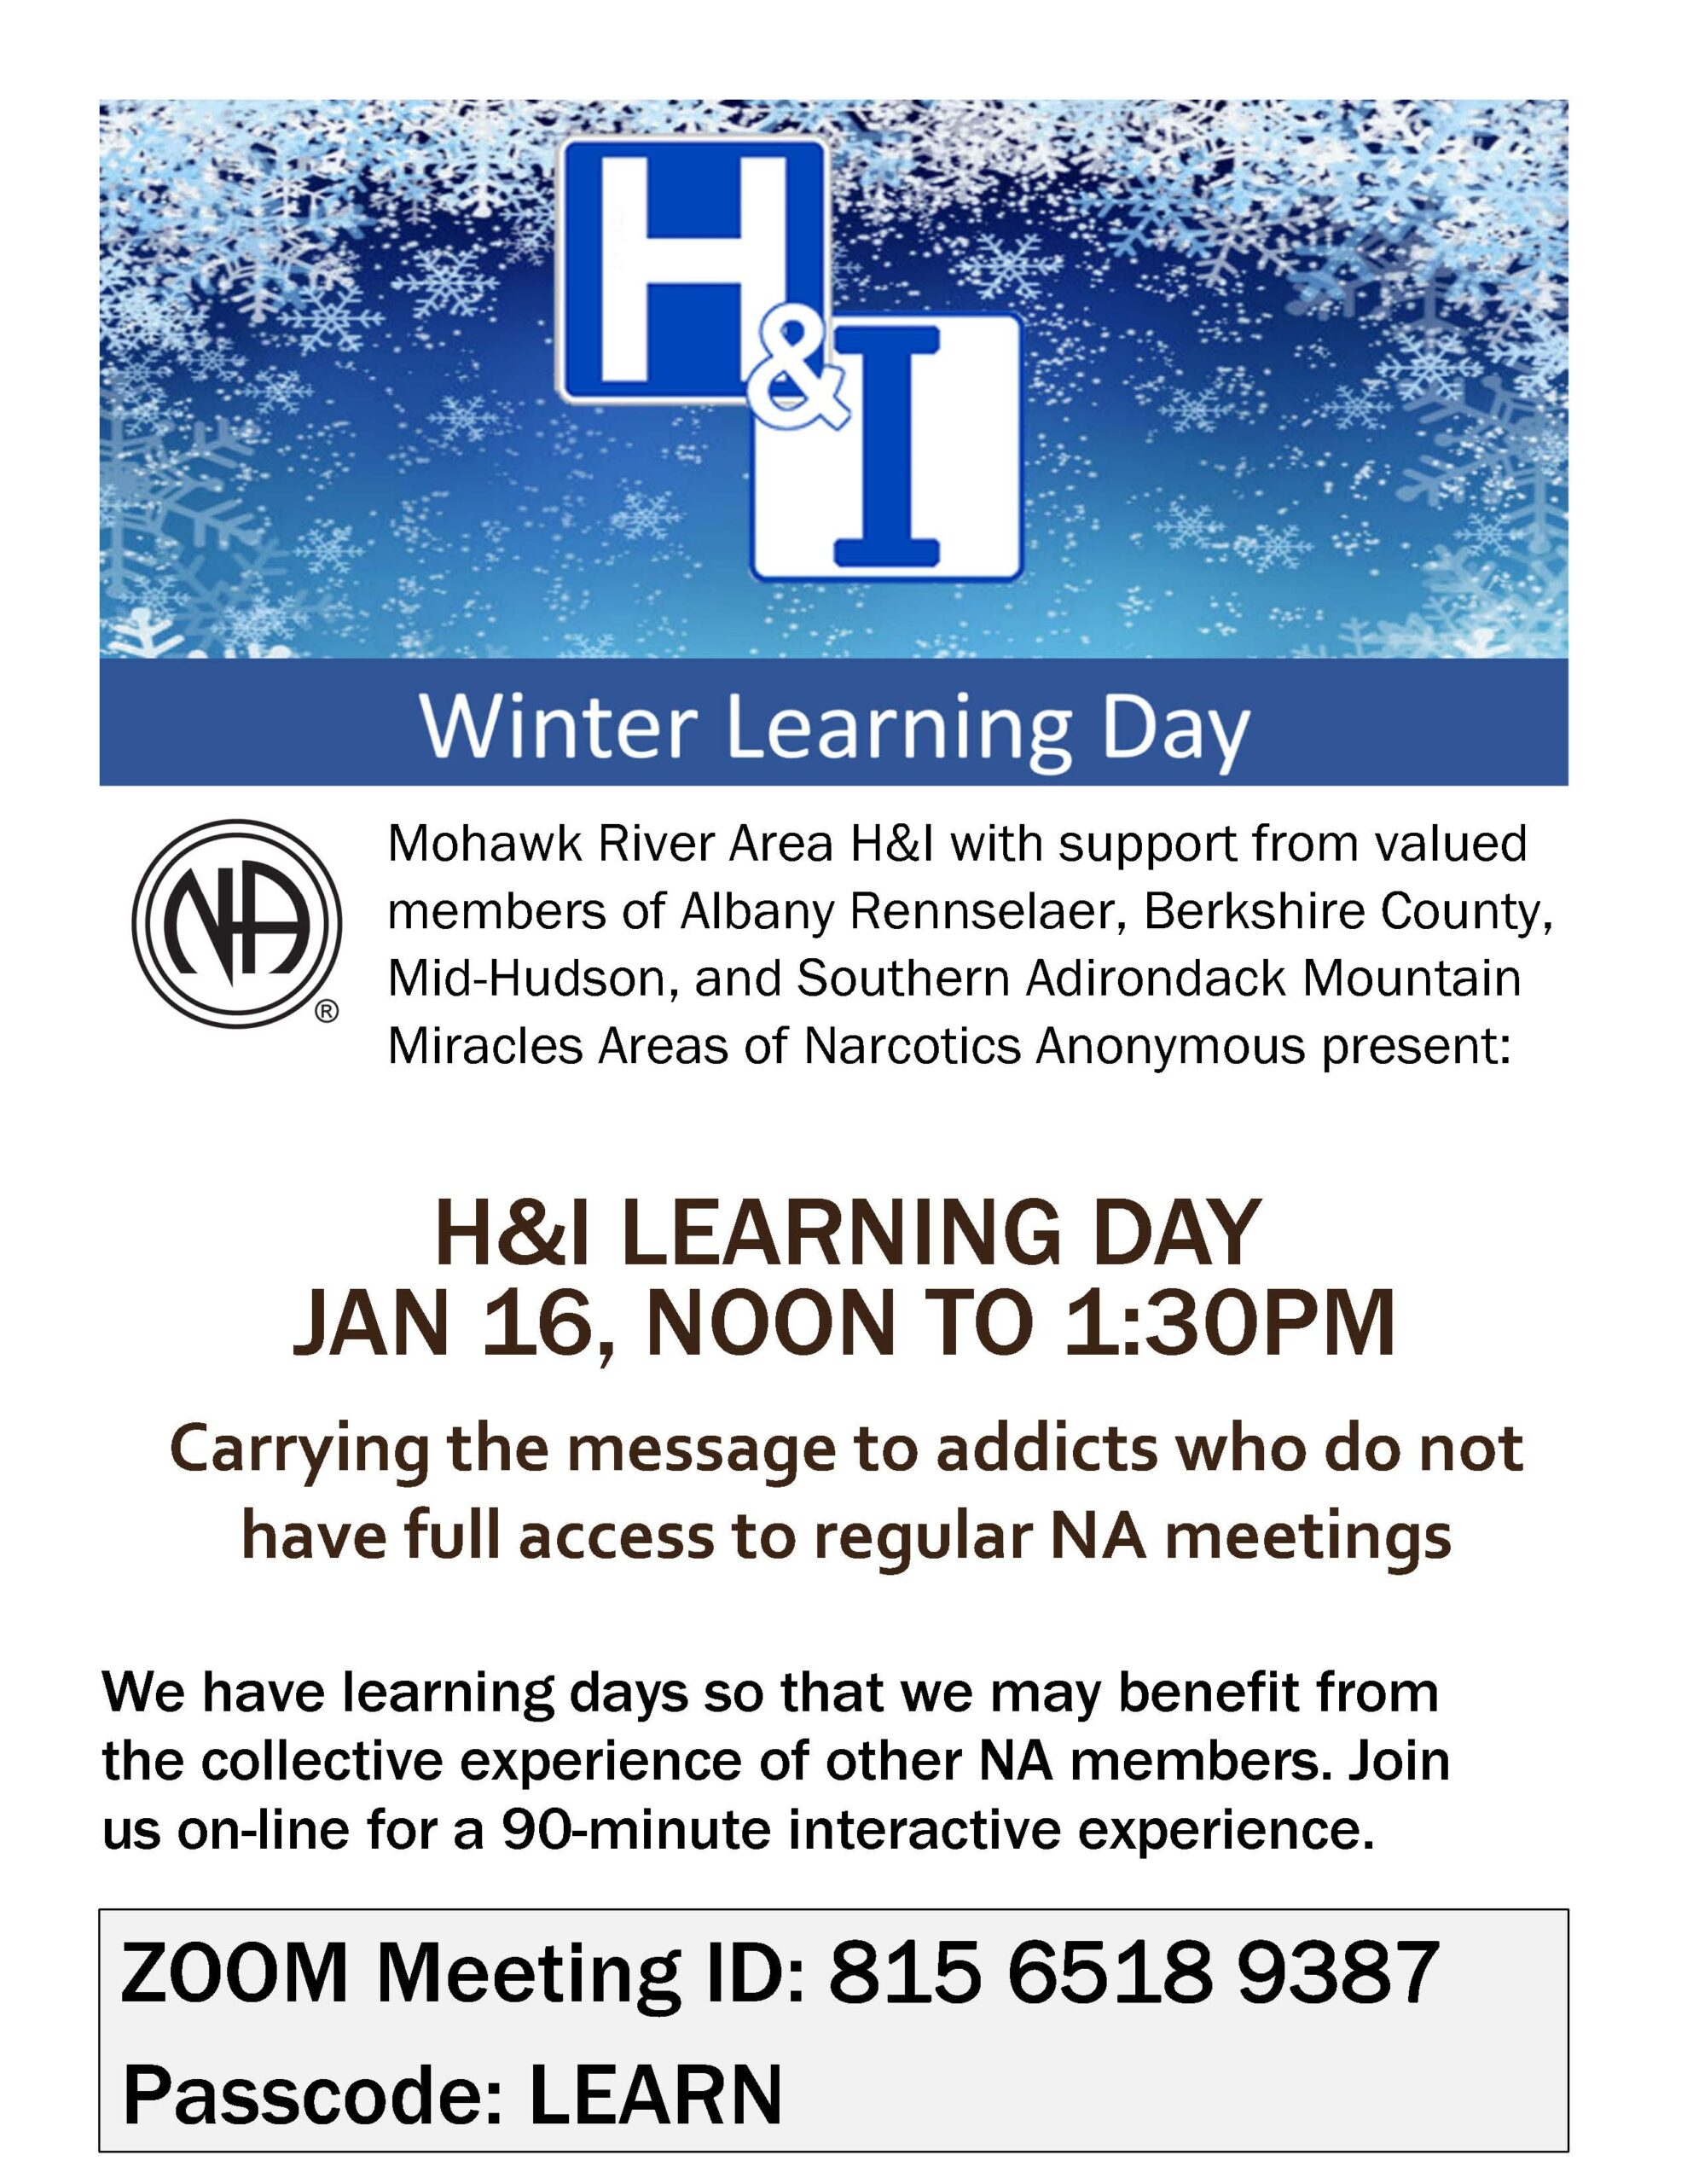 H&I Winter Learning Day @ Zoom